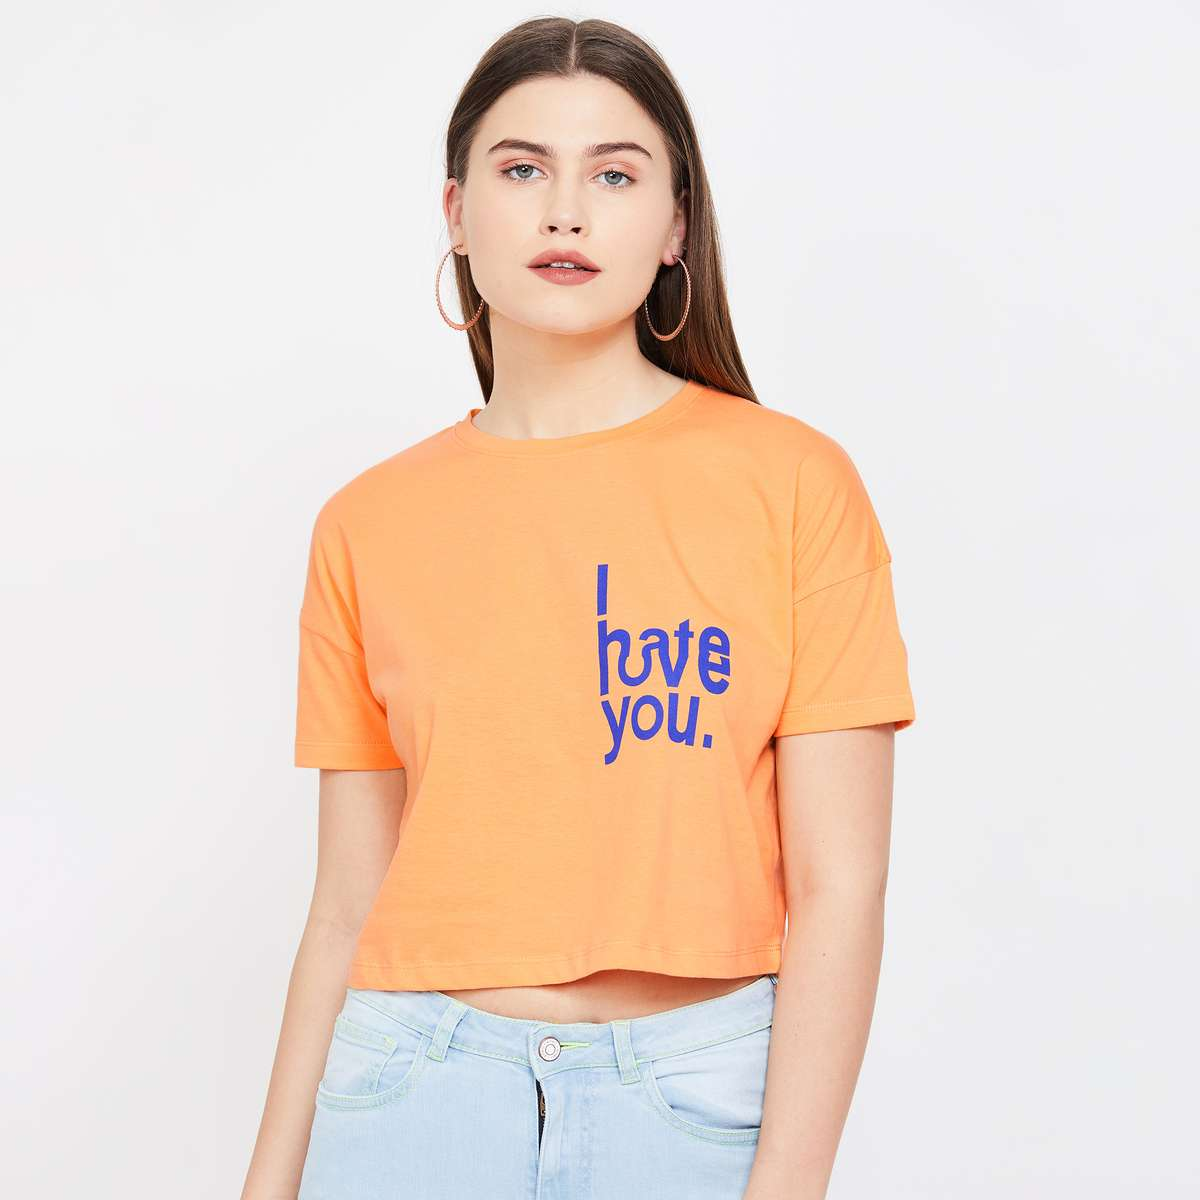 3.GINGER Printed Cropped Round Neck T-shirt